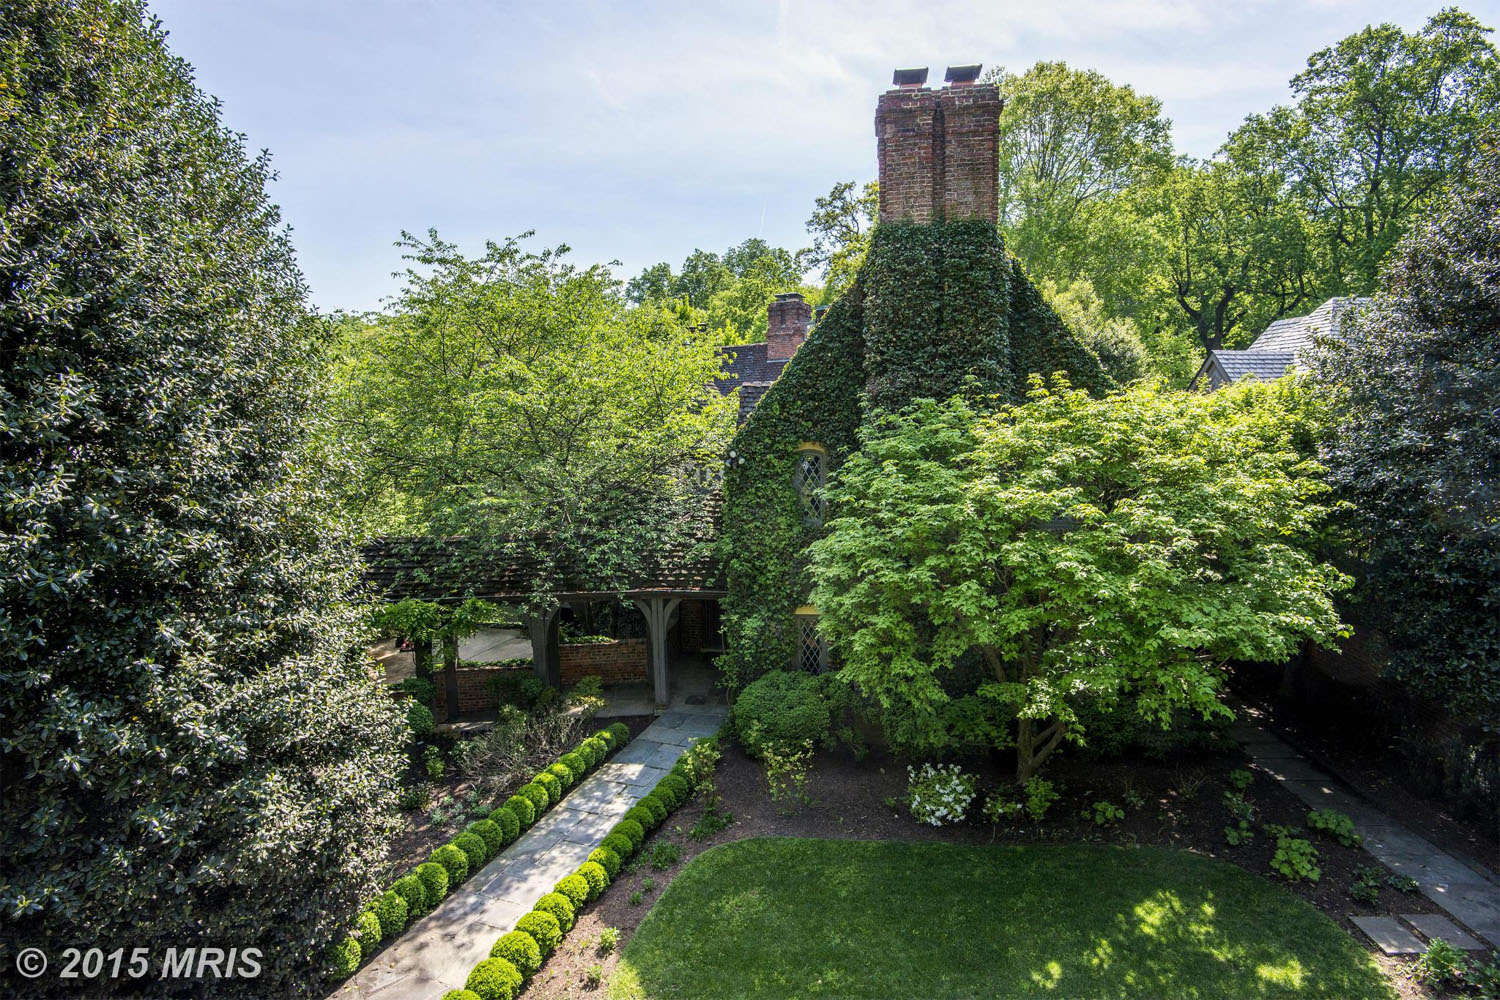 $5,250,000  2728 32nd St. NW Washington, D.C.   The Tudor-style home, originally built in 1933, went for $5.25 million last month. The Massachusetts Avenue Heights home boasts five bedrooms and five bathrooms.  (MRIS)